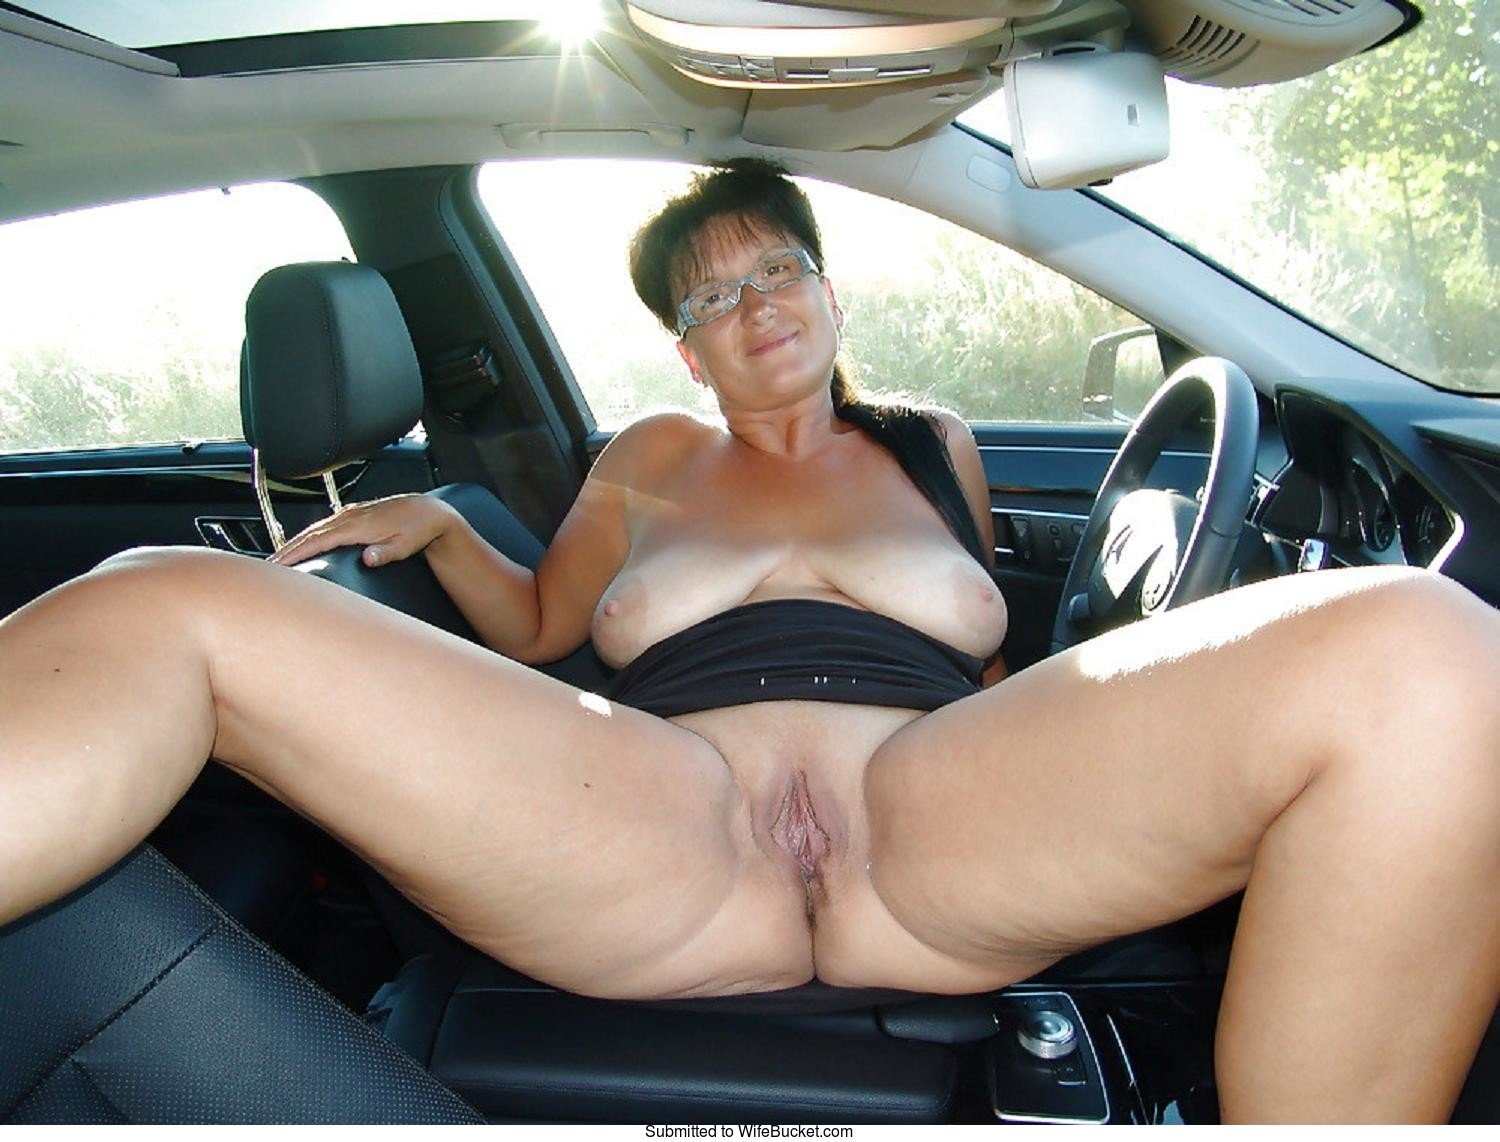 Nude woman race car driver